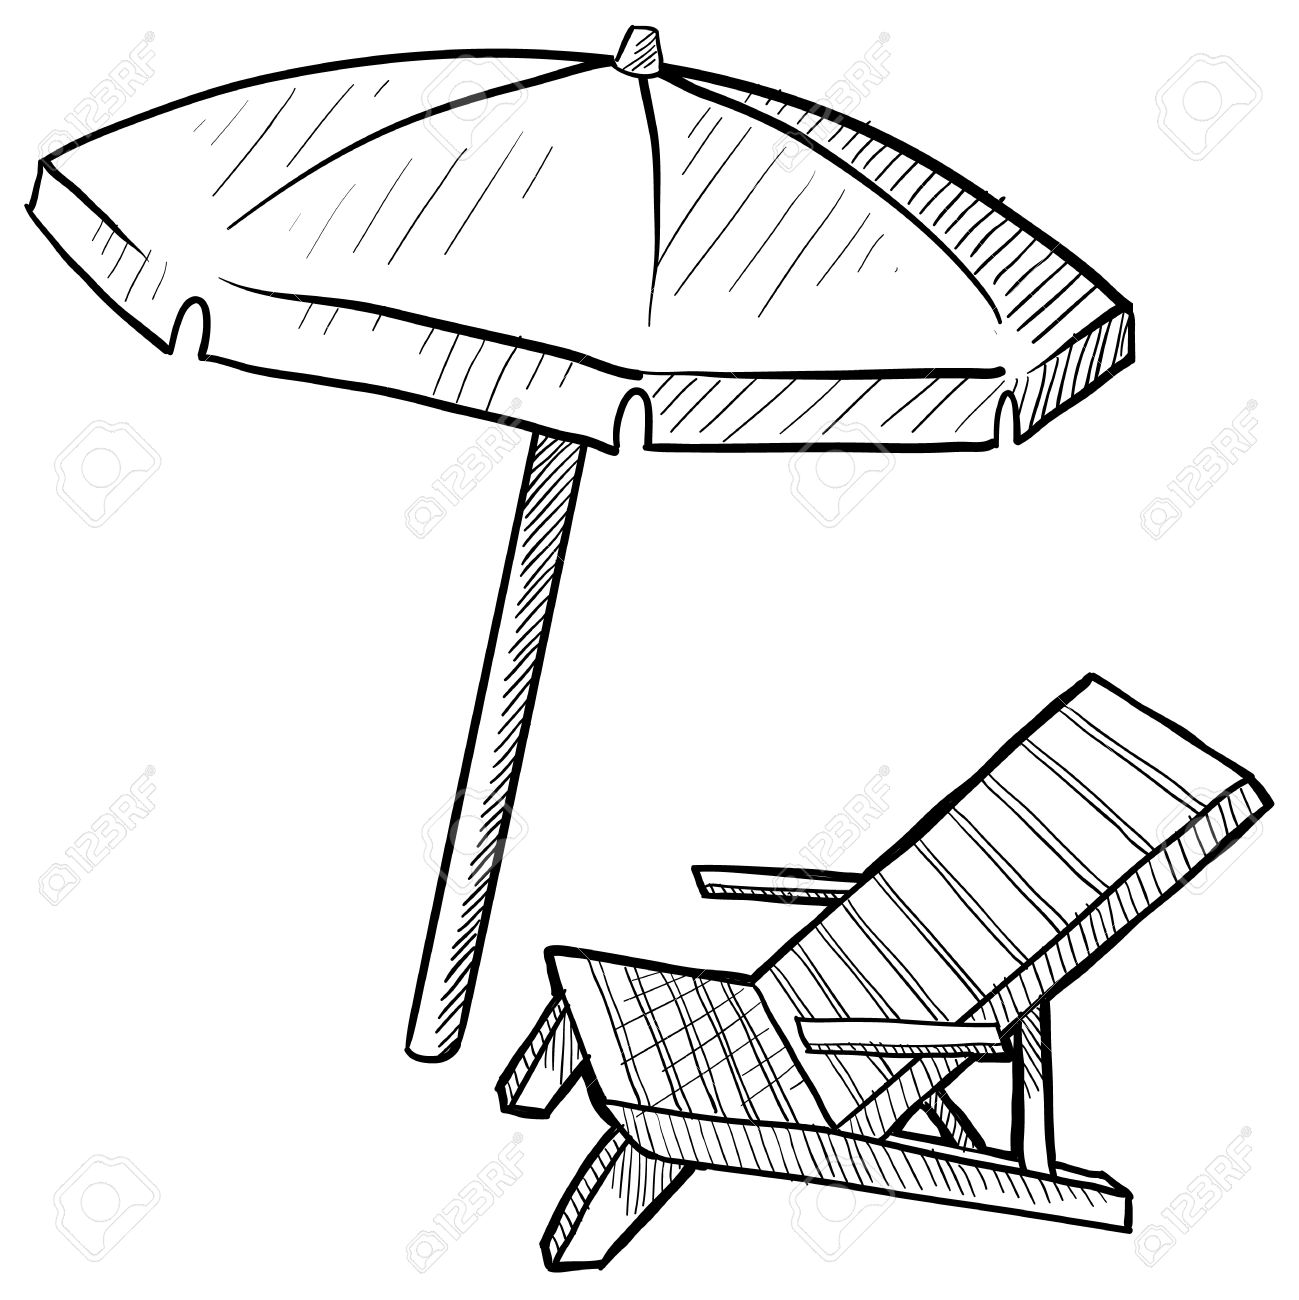 Line Drawing Umbrella : Umbrella line drawing at getdrawings free for